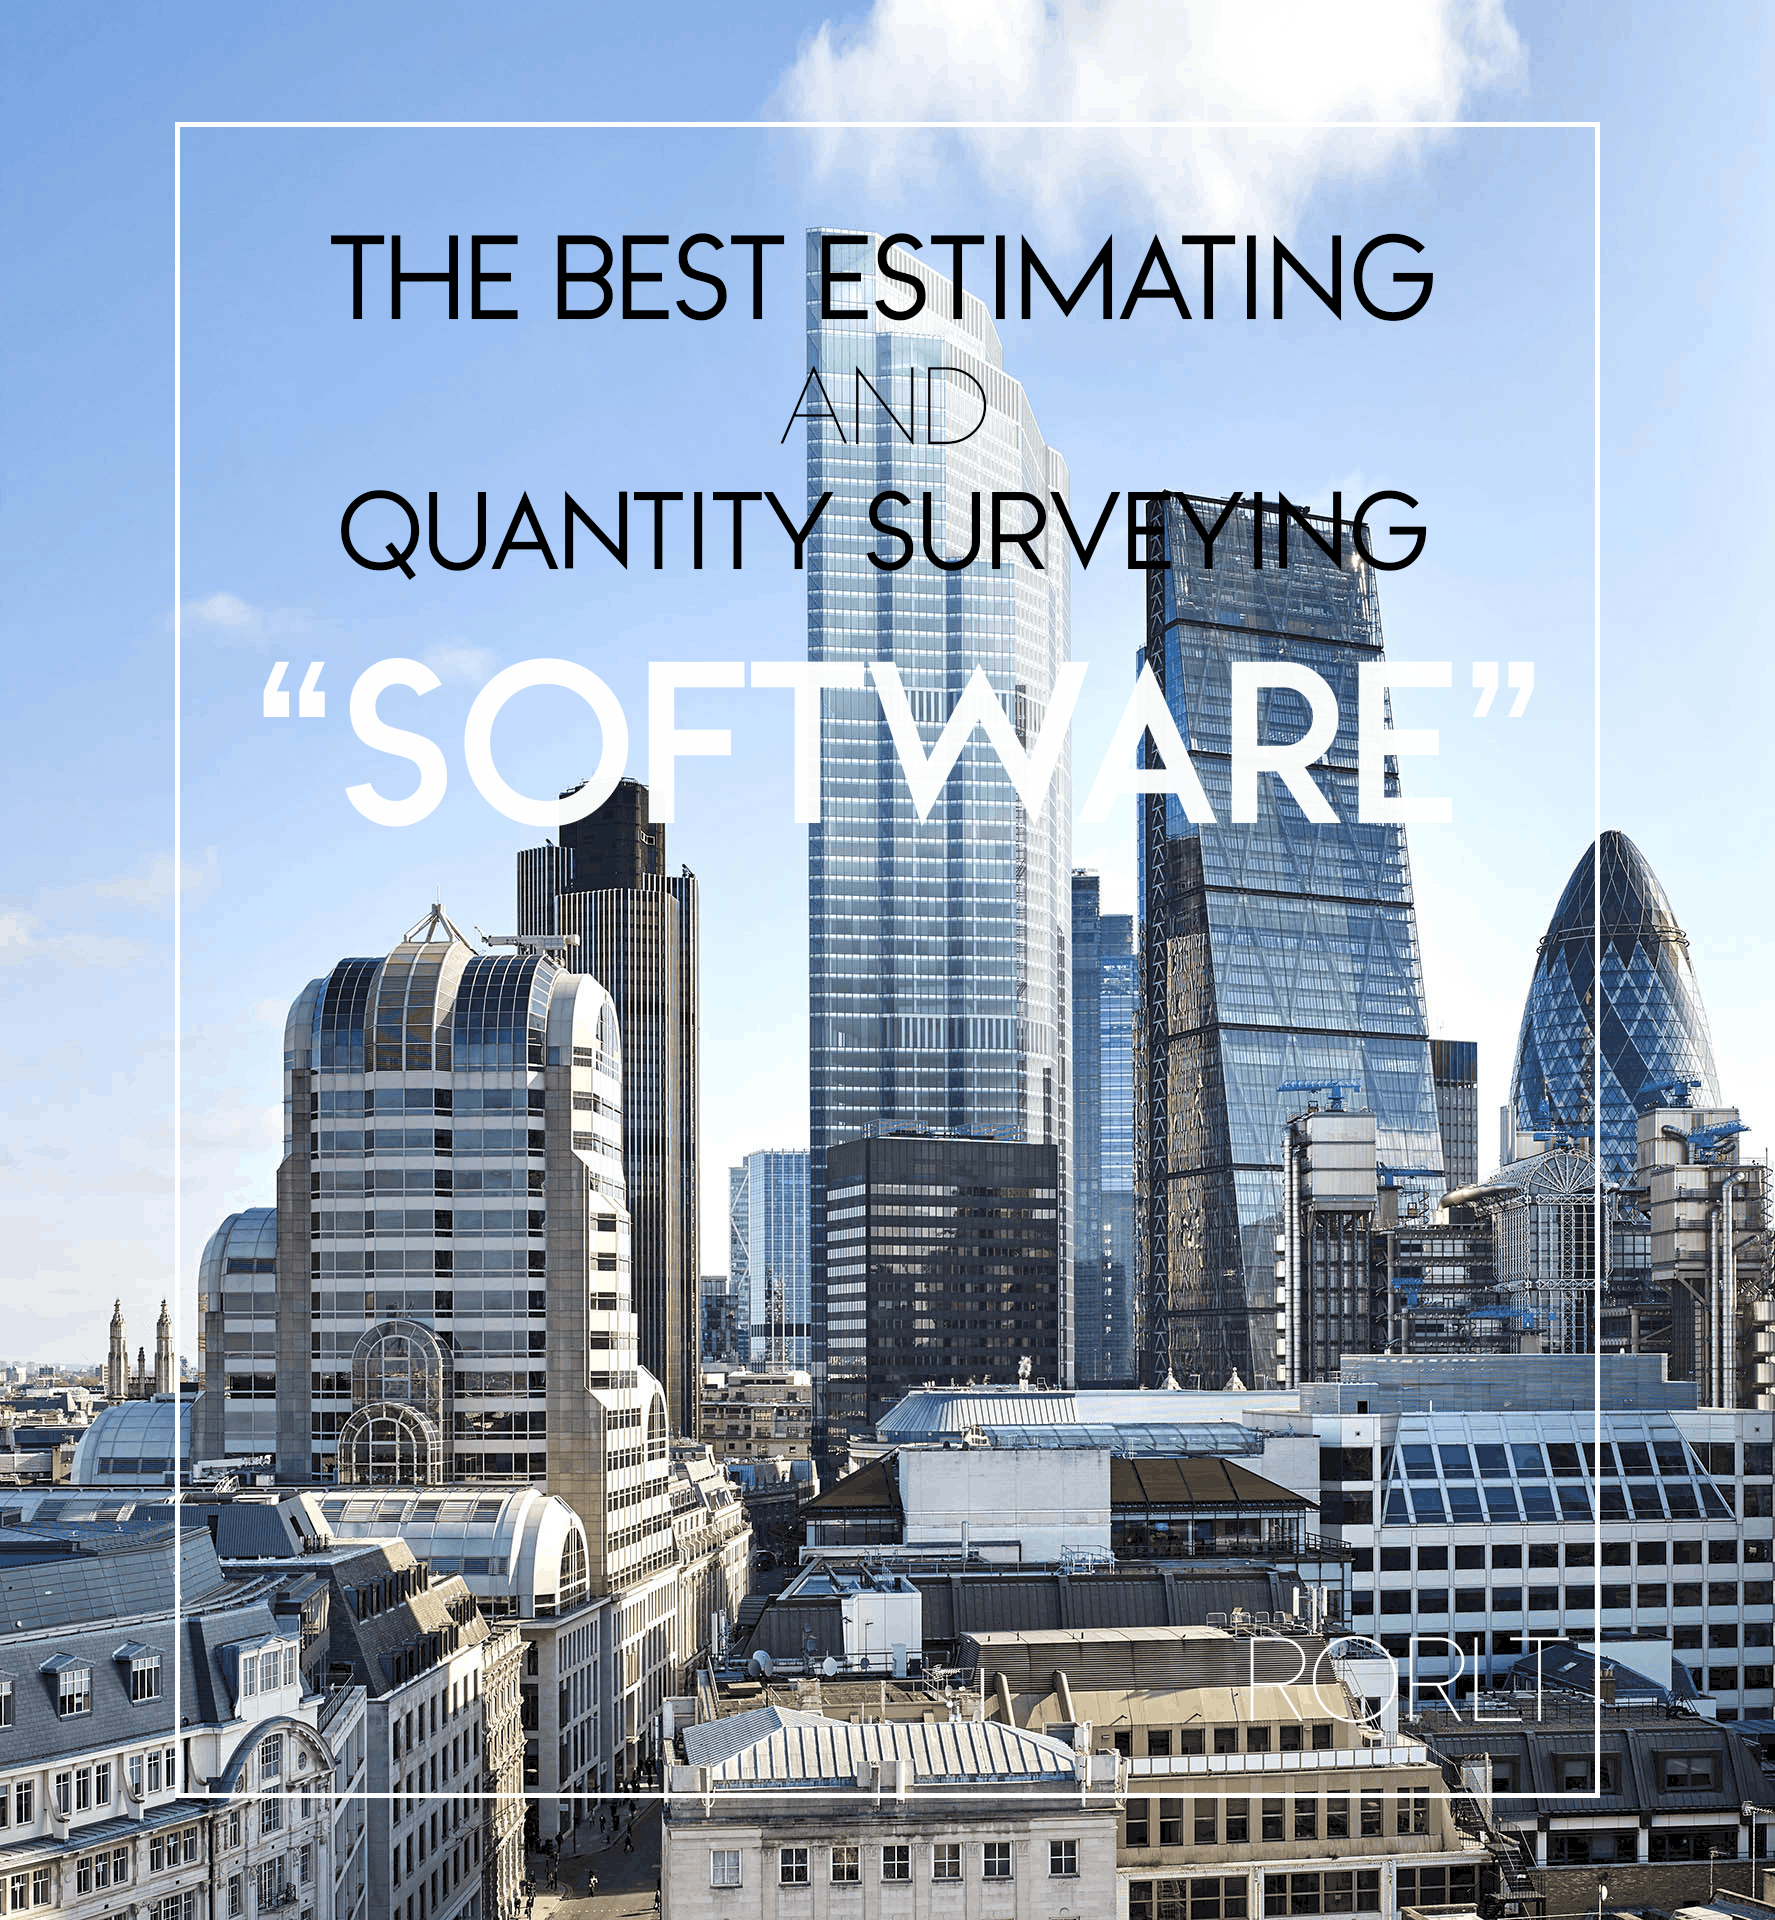 the_best_estimating_and_quantity_surveying_software_for_engineer.png